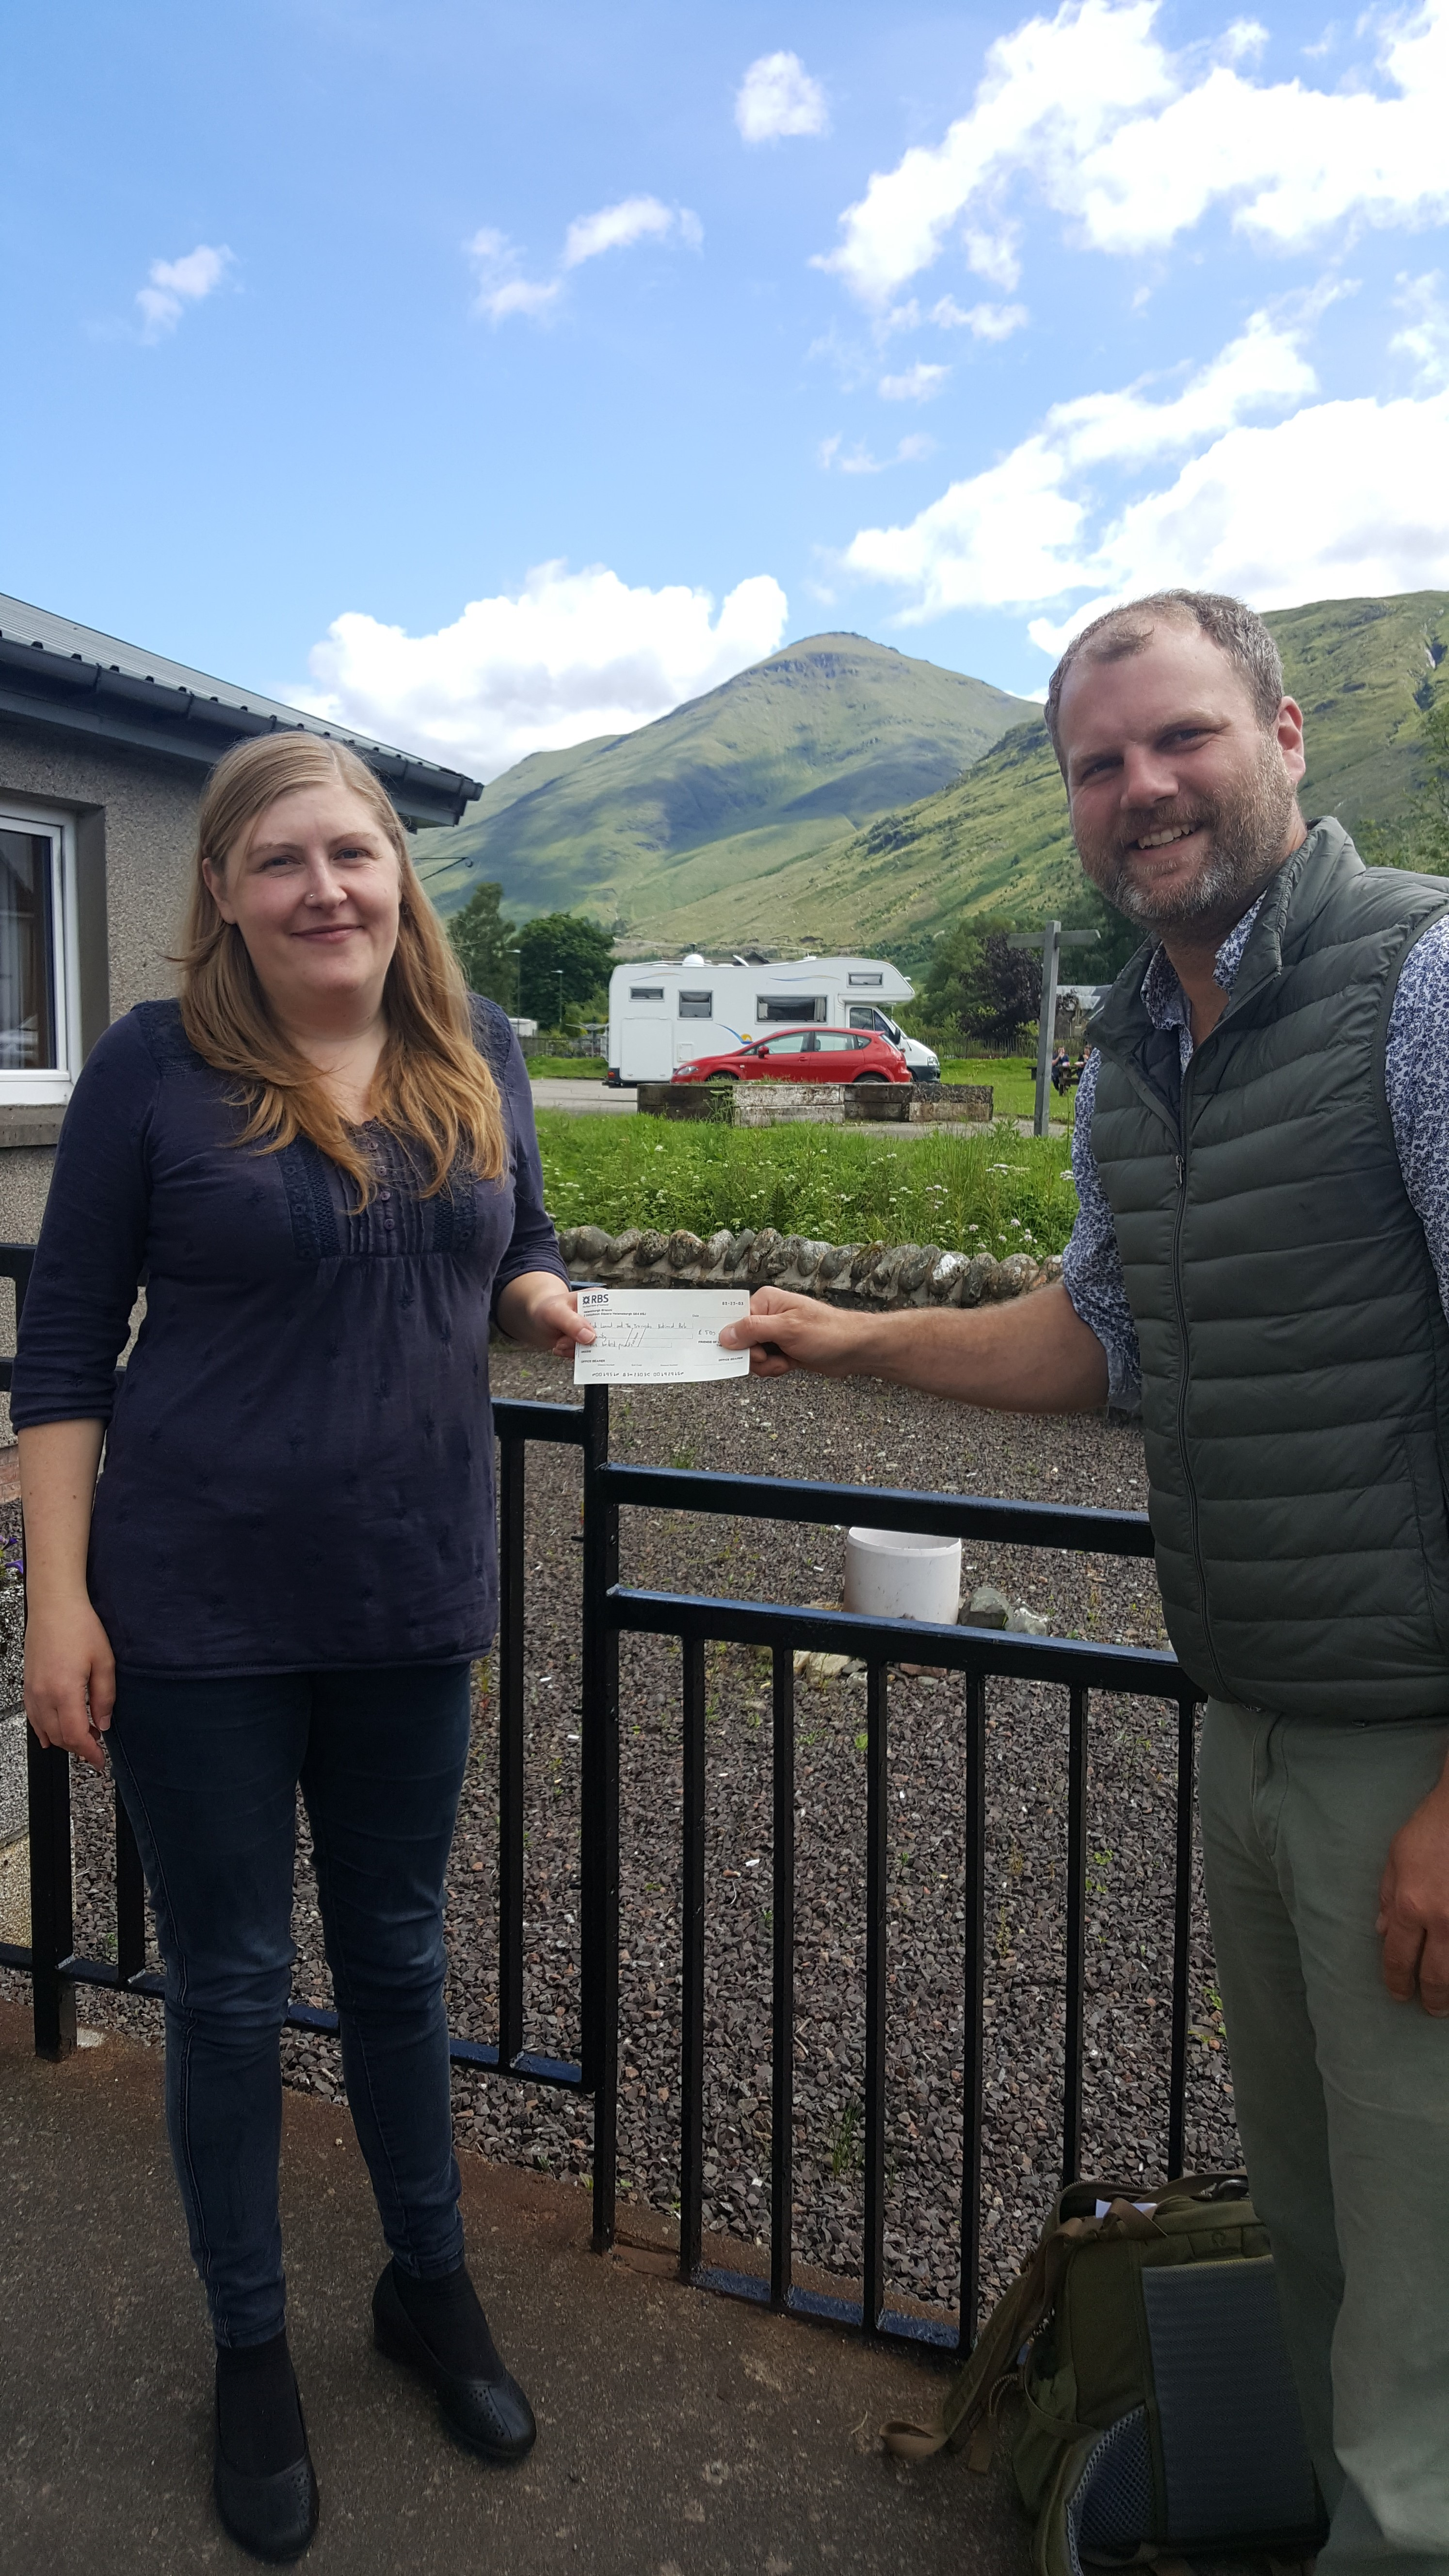 Jared Bowers, Project Officer of Friends of Loch Lomond and The Trossachs, presents the cheque for £500 to Kelly Clapperton-Bates of Strathfillan Community Development Trust.